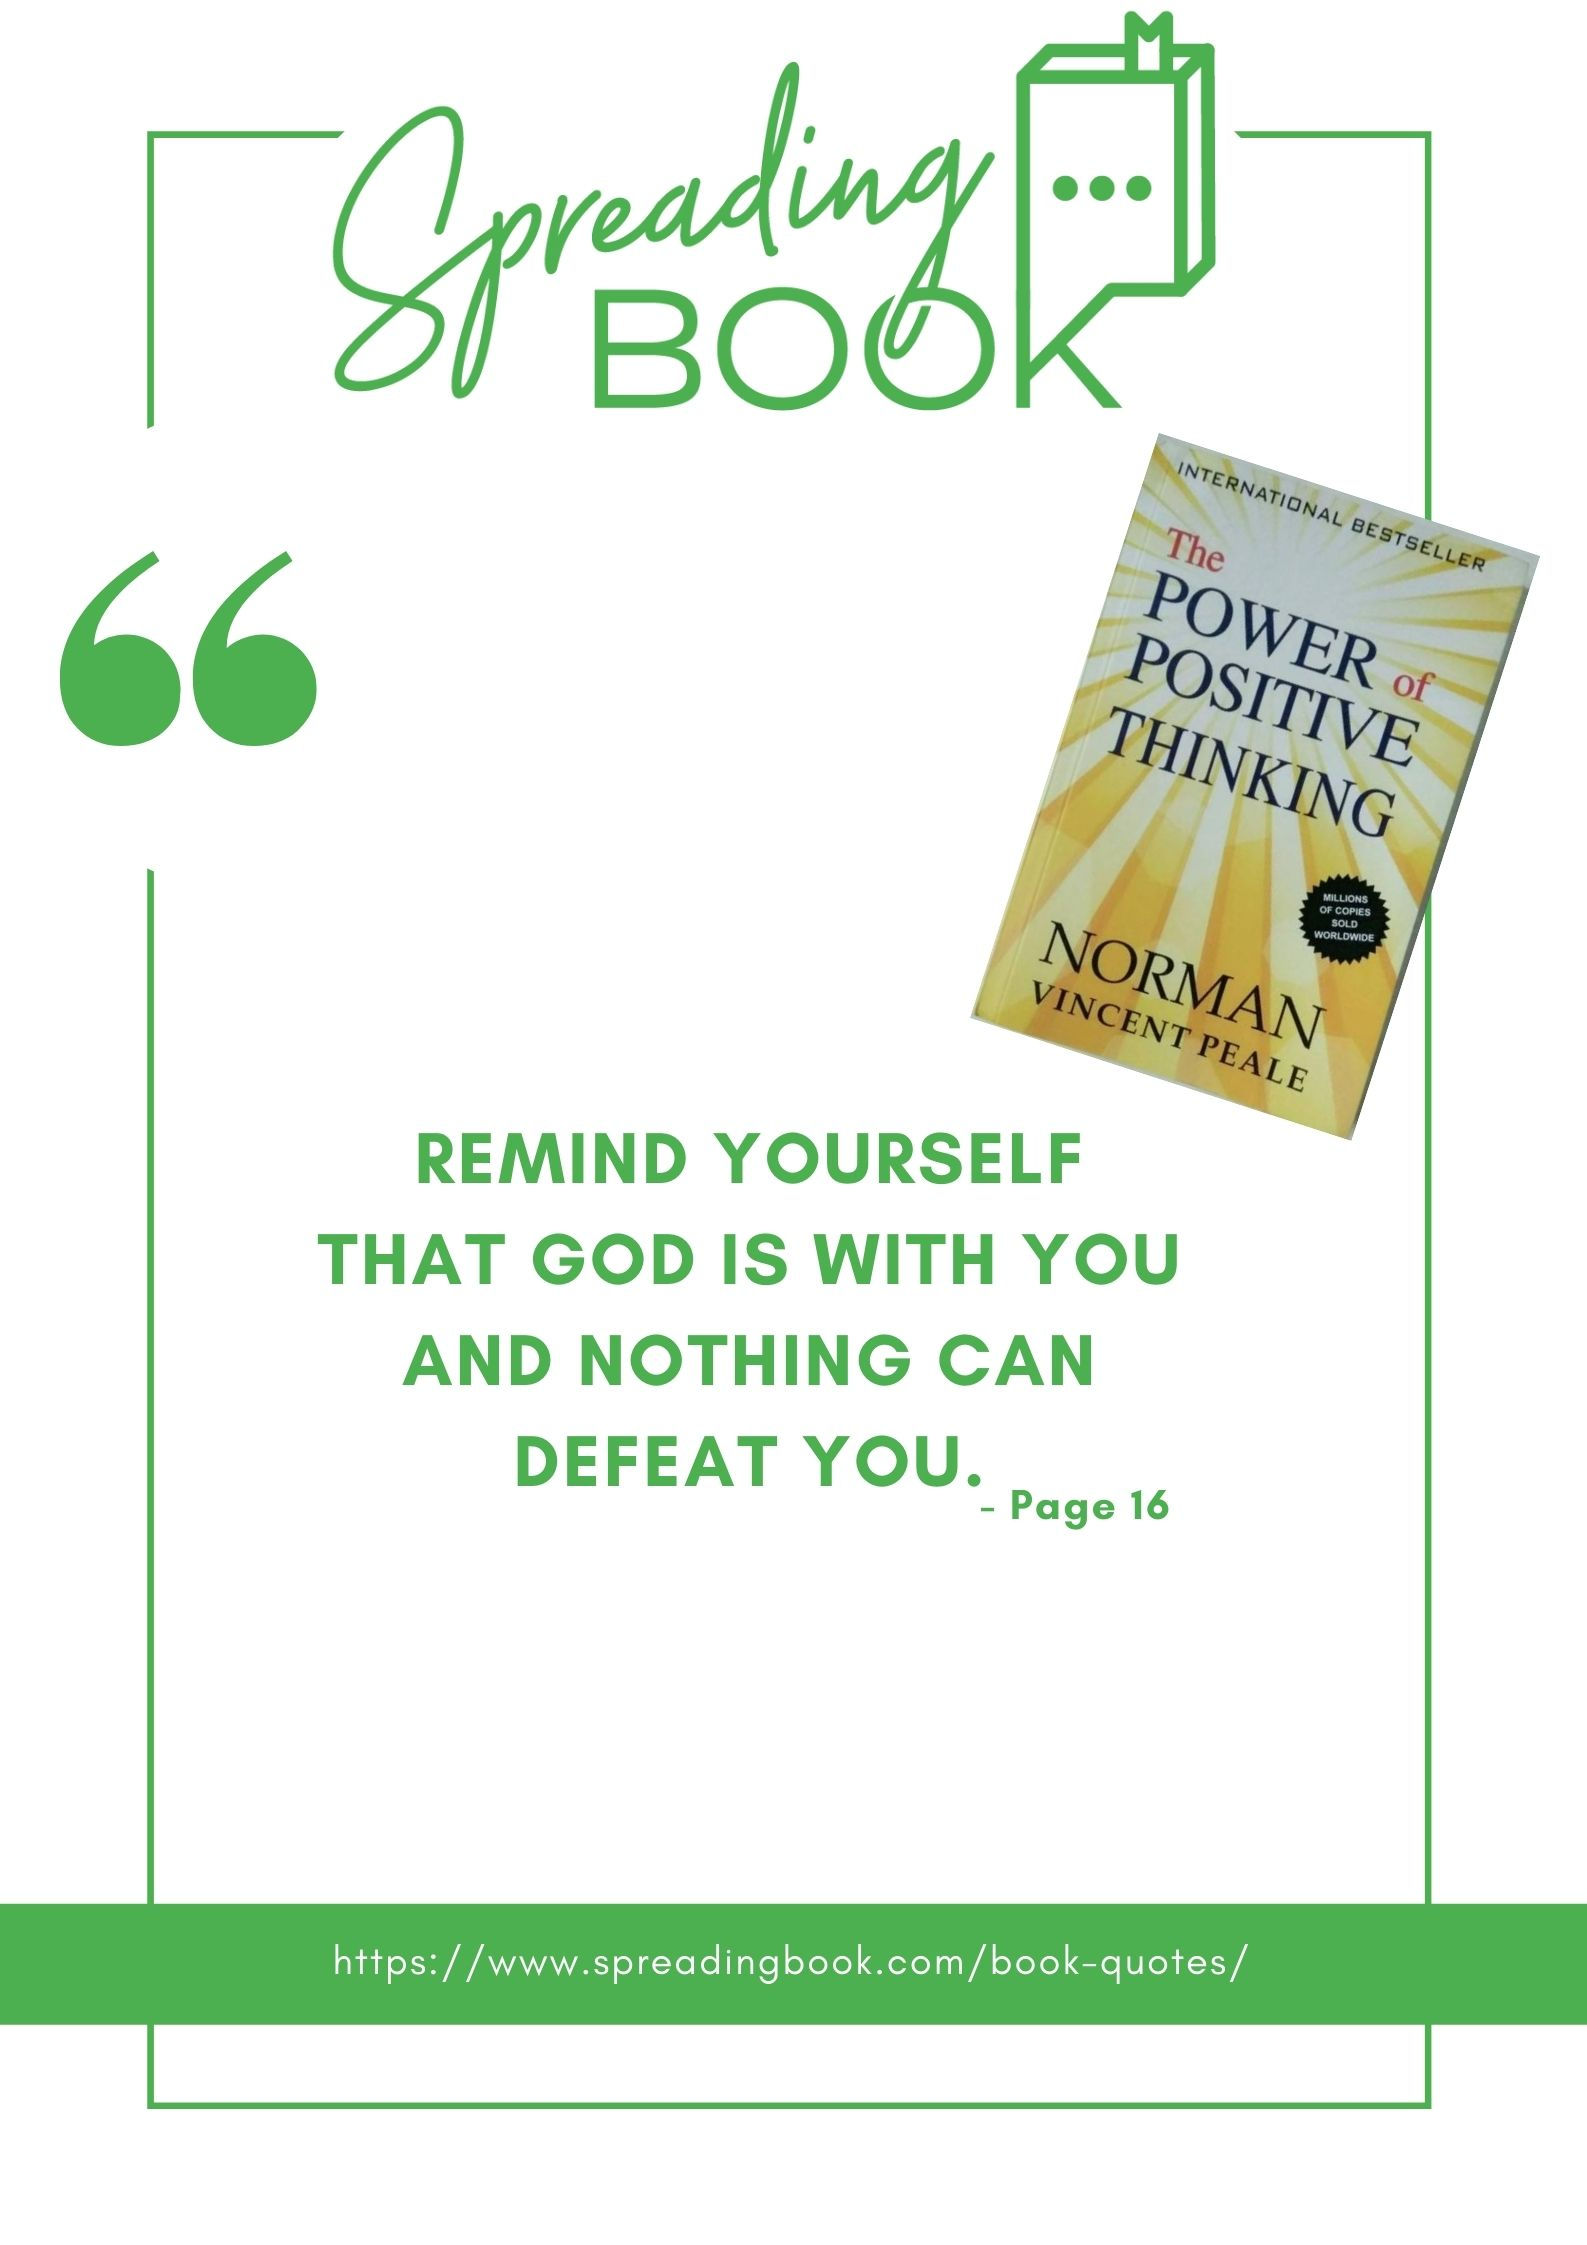 Remind yourself that God is with you and nothing can defeat you.